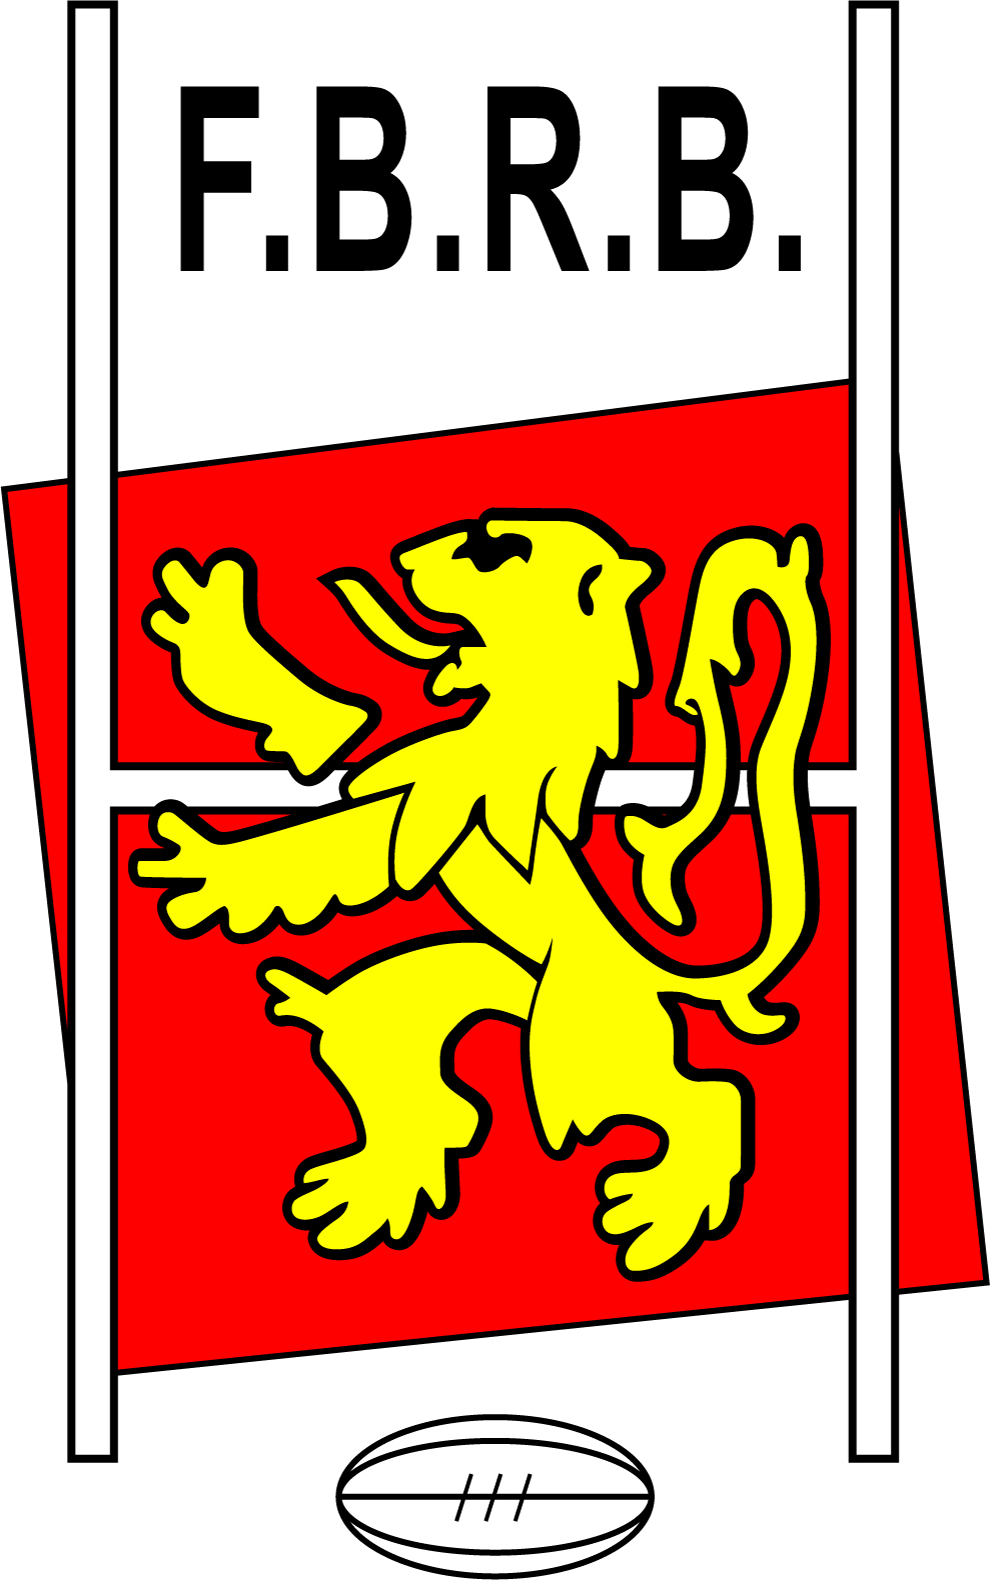 Belgian Rugby Federation